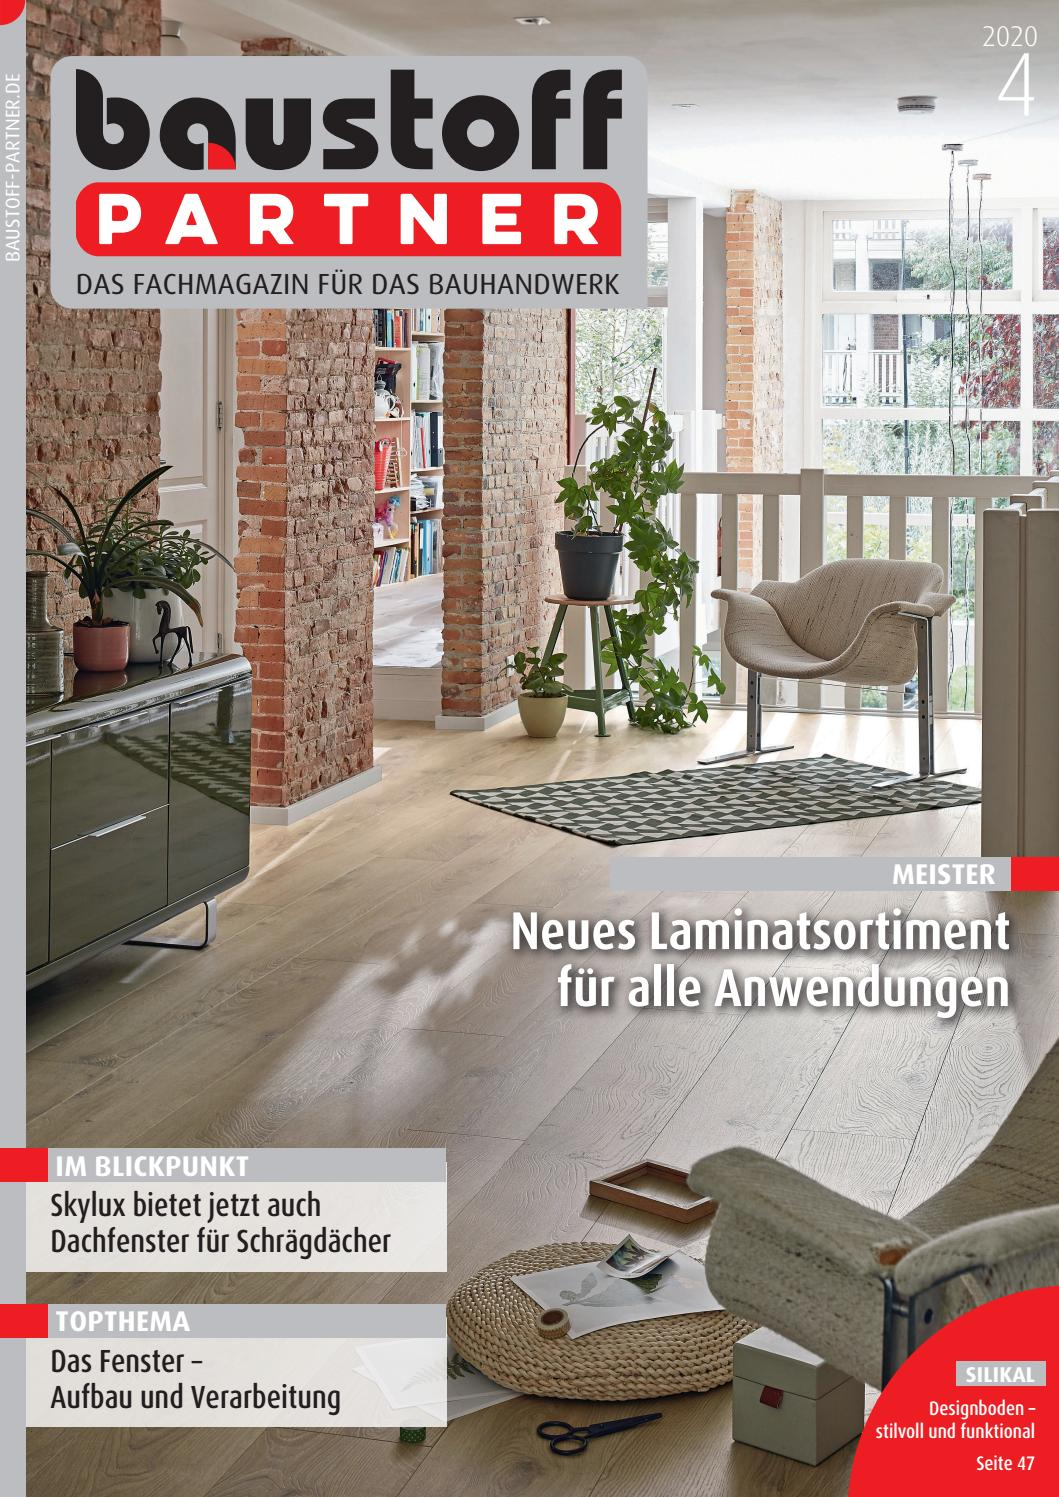 Baustoffpartner April 2020 By Sbm Verlag Gmbh Issuu